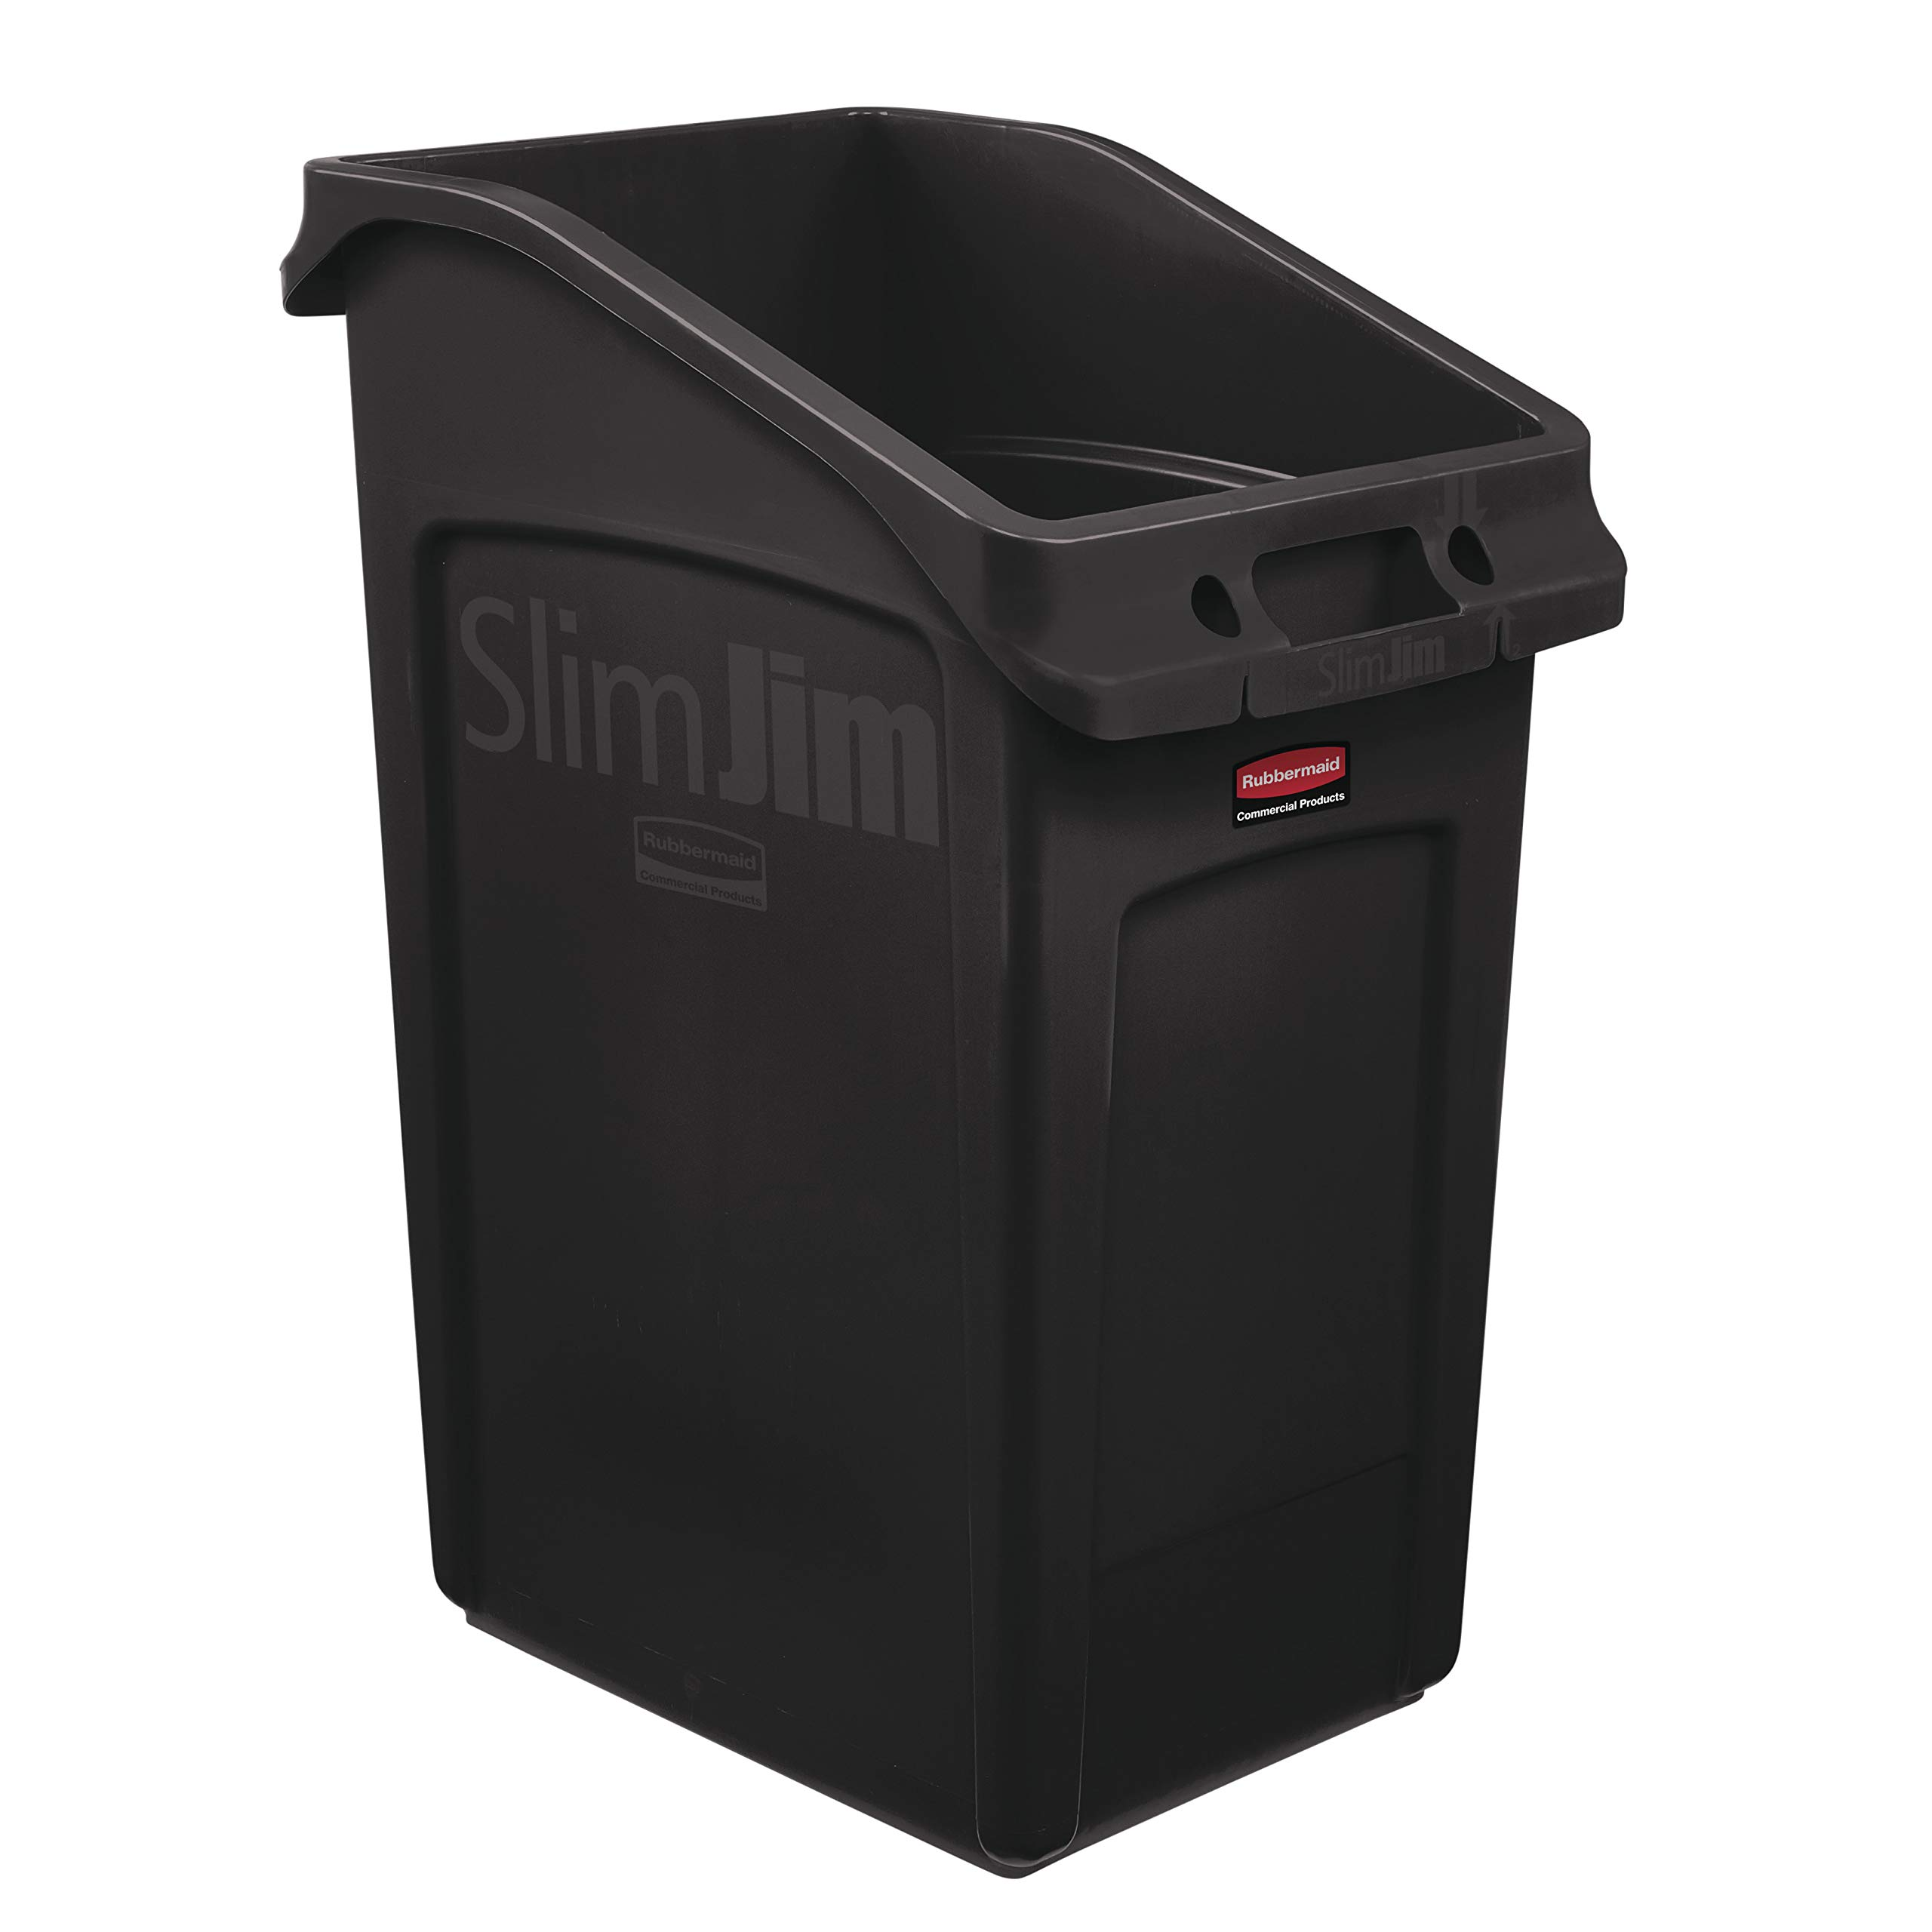 Rubbermaid Commercial Products 2026723 Slim Jim Under-Counter Trash Can with Venting Channels, 23 Gallon, Brown